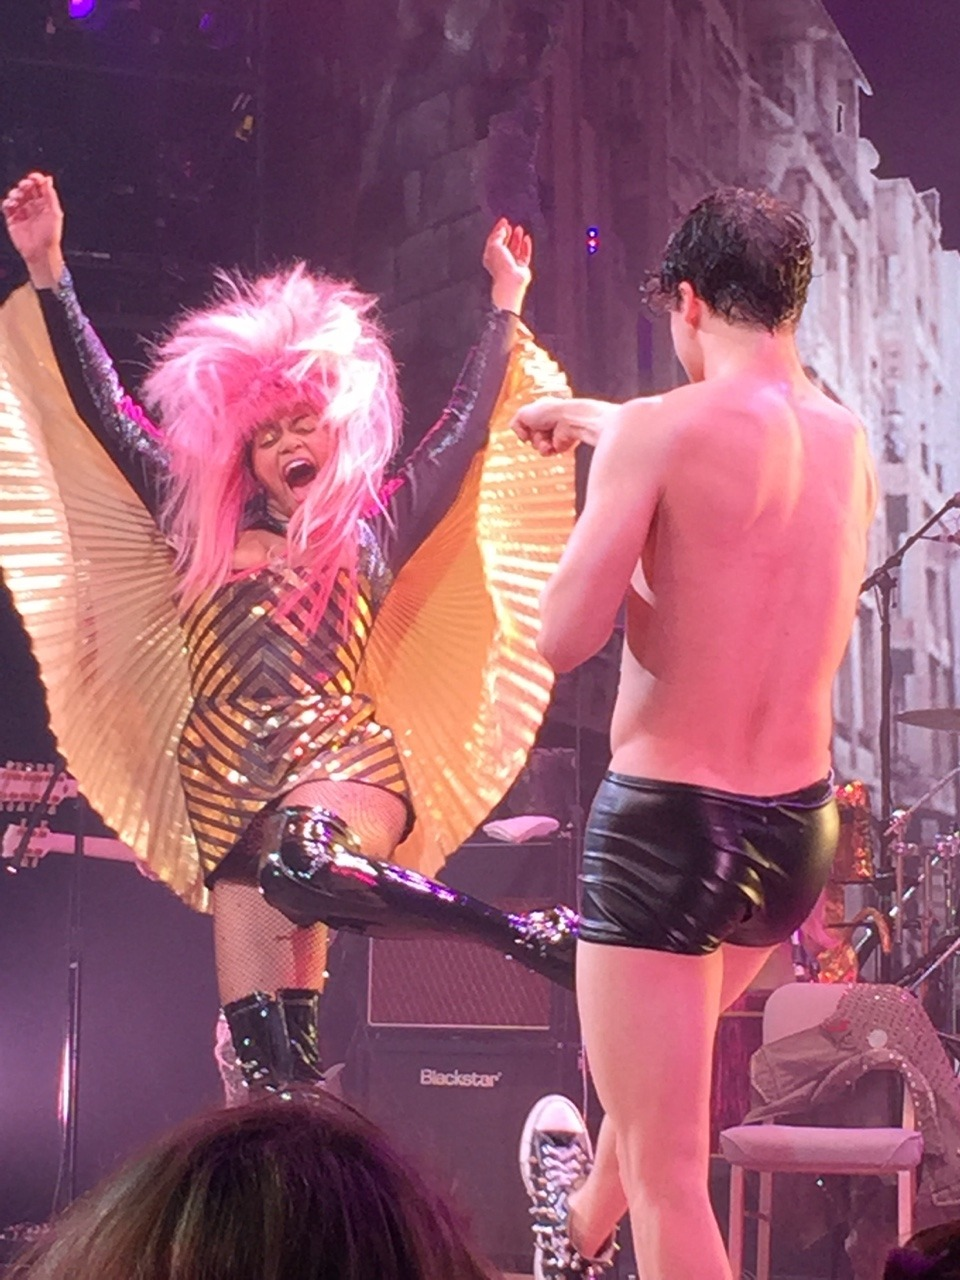 hedwig - Pics and gifs of Darren in Hedwig and the Angry Inch on Broadway. Tumblr_nq6b14Y2Qk1qdtnwjo5_1280